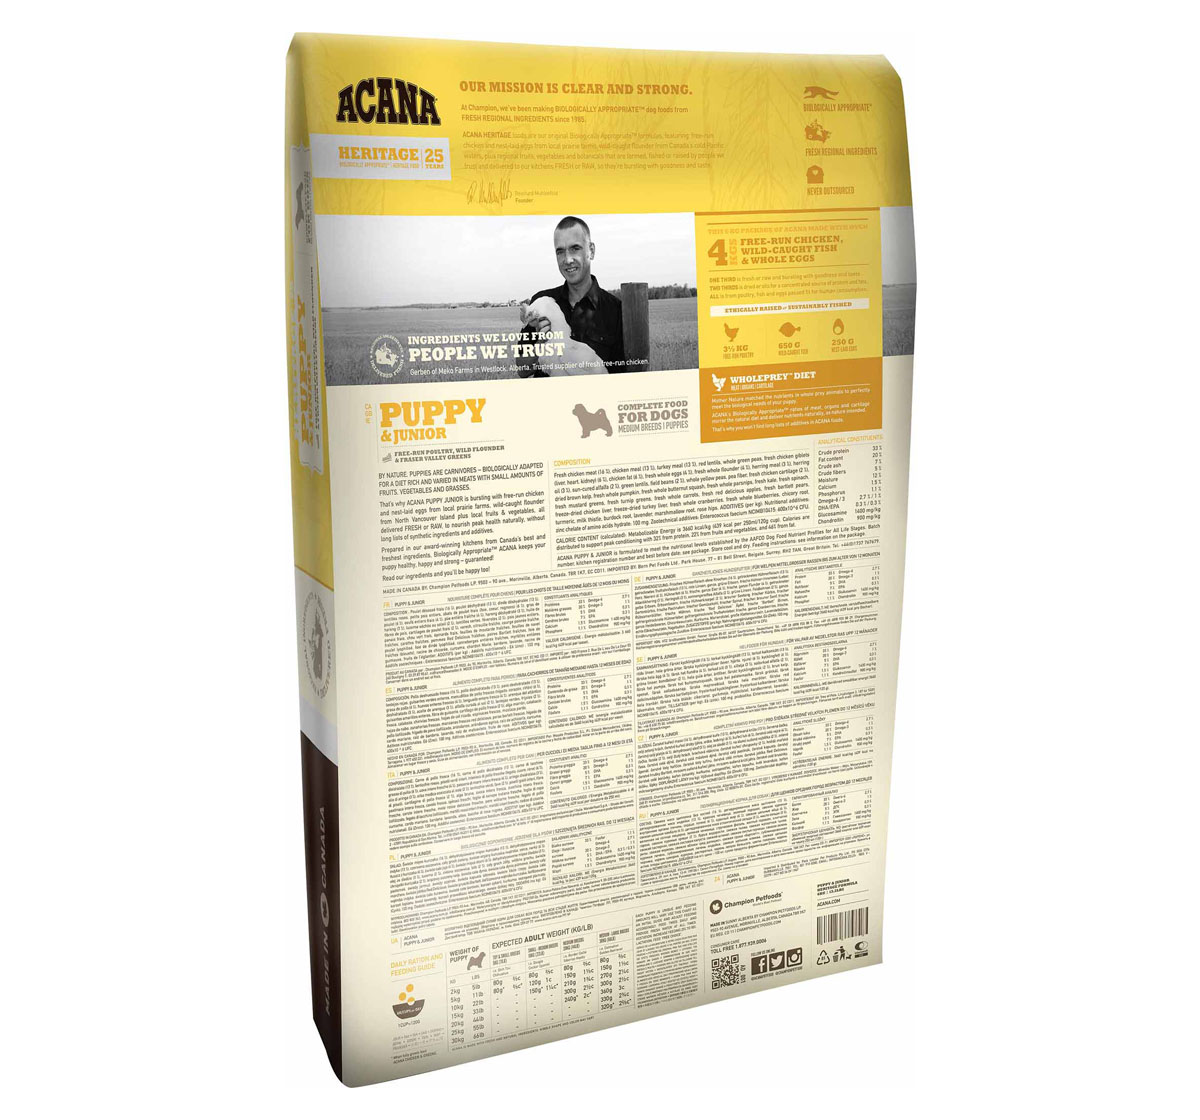 Acana Puppy & Junior Food - 340 gm